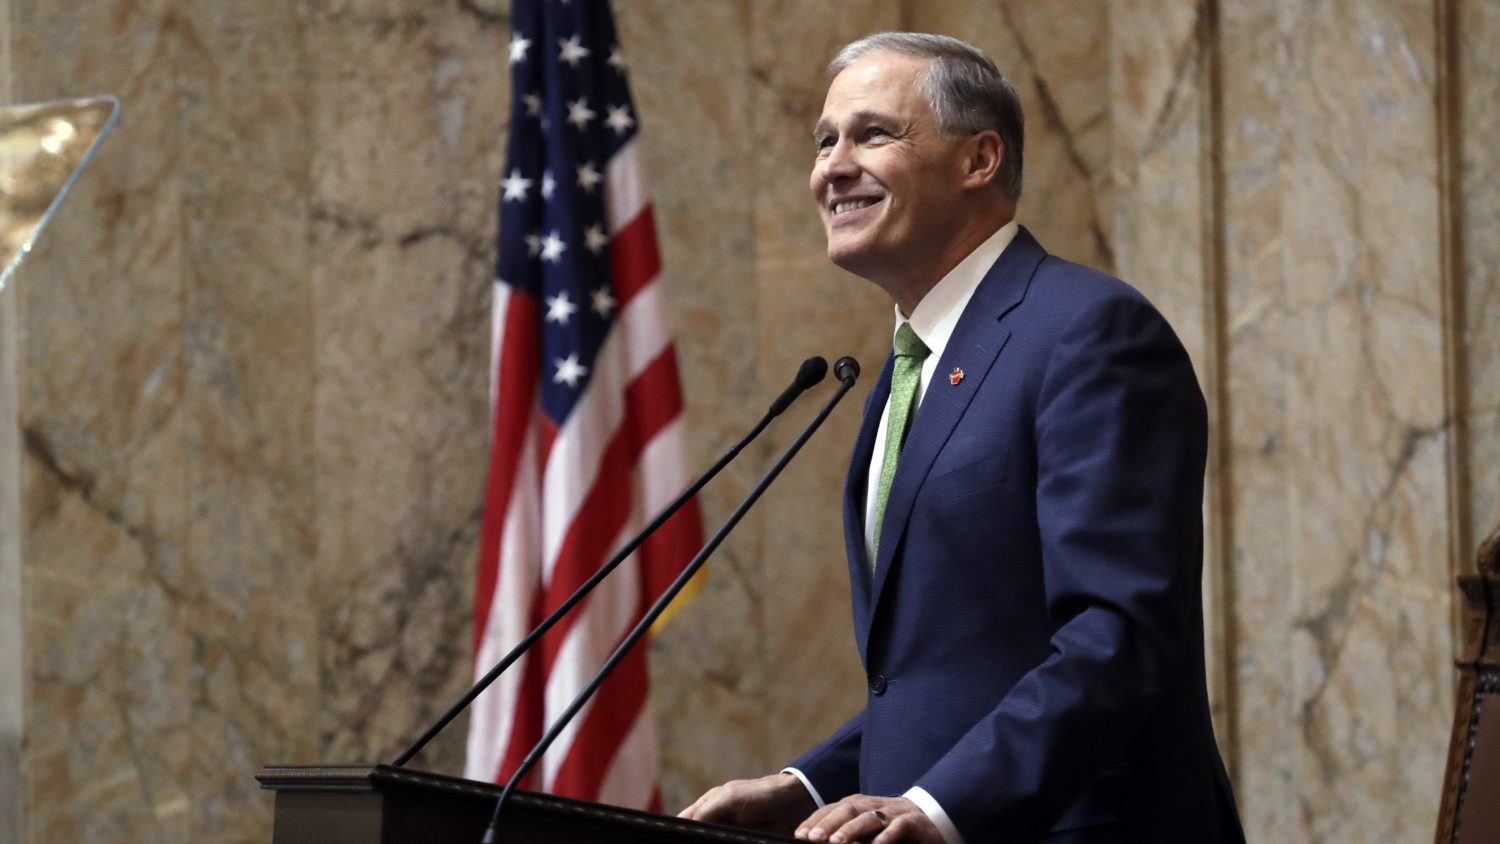 Best States For Jobs In 2020 Promising To Tackle Climate Change, Washington Gov. Jay Inslee